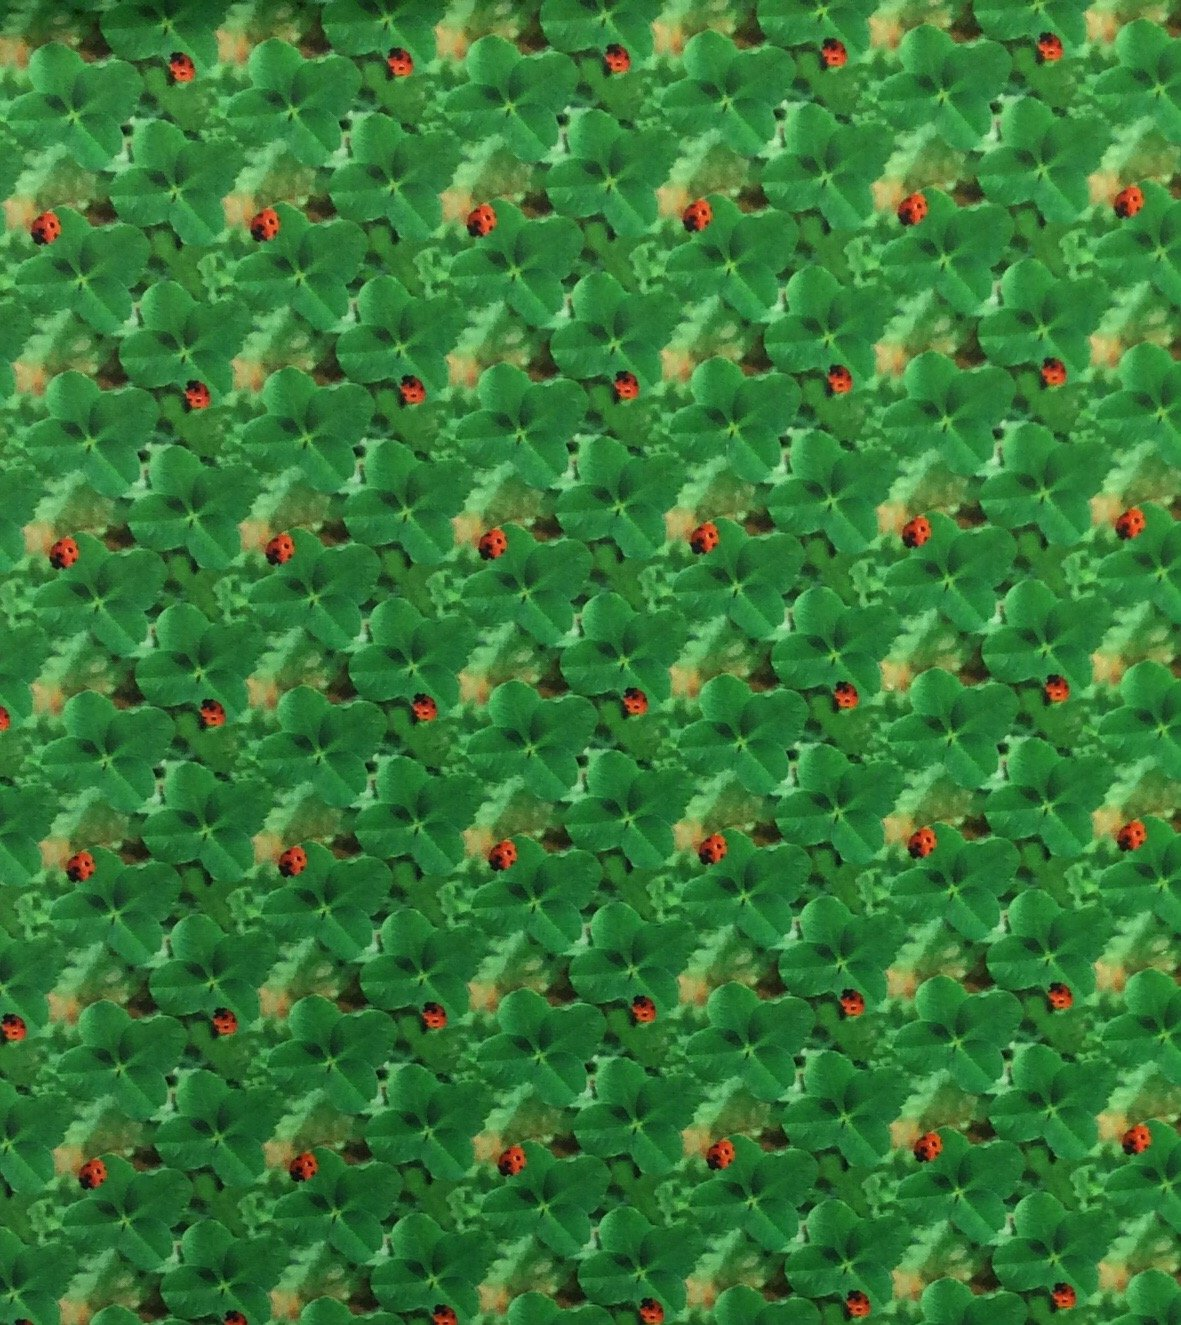 France Ladybug Four Leaf Clovers Good Luck Digital Printed Cotton Quilt Fabric ST10